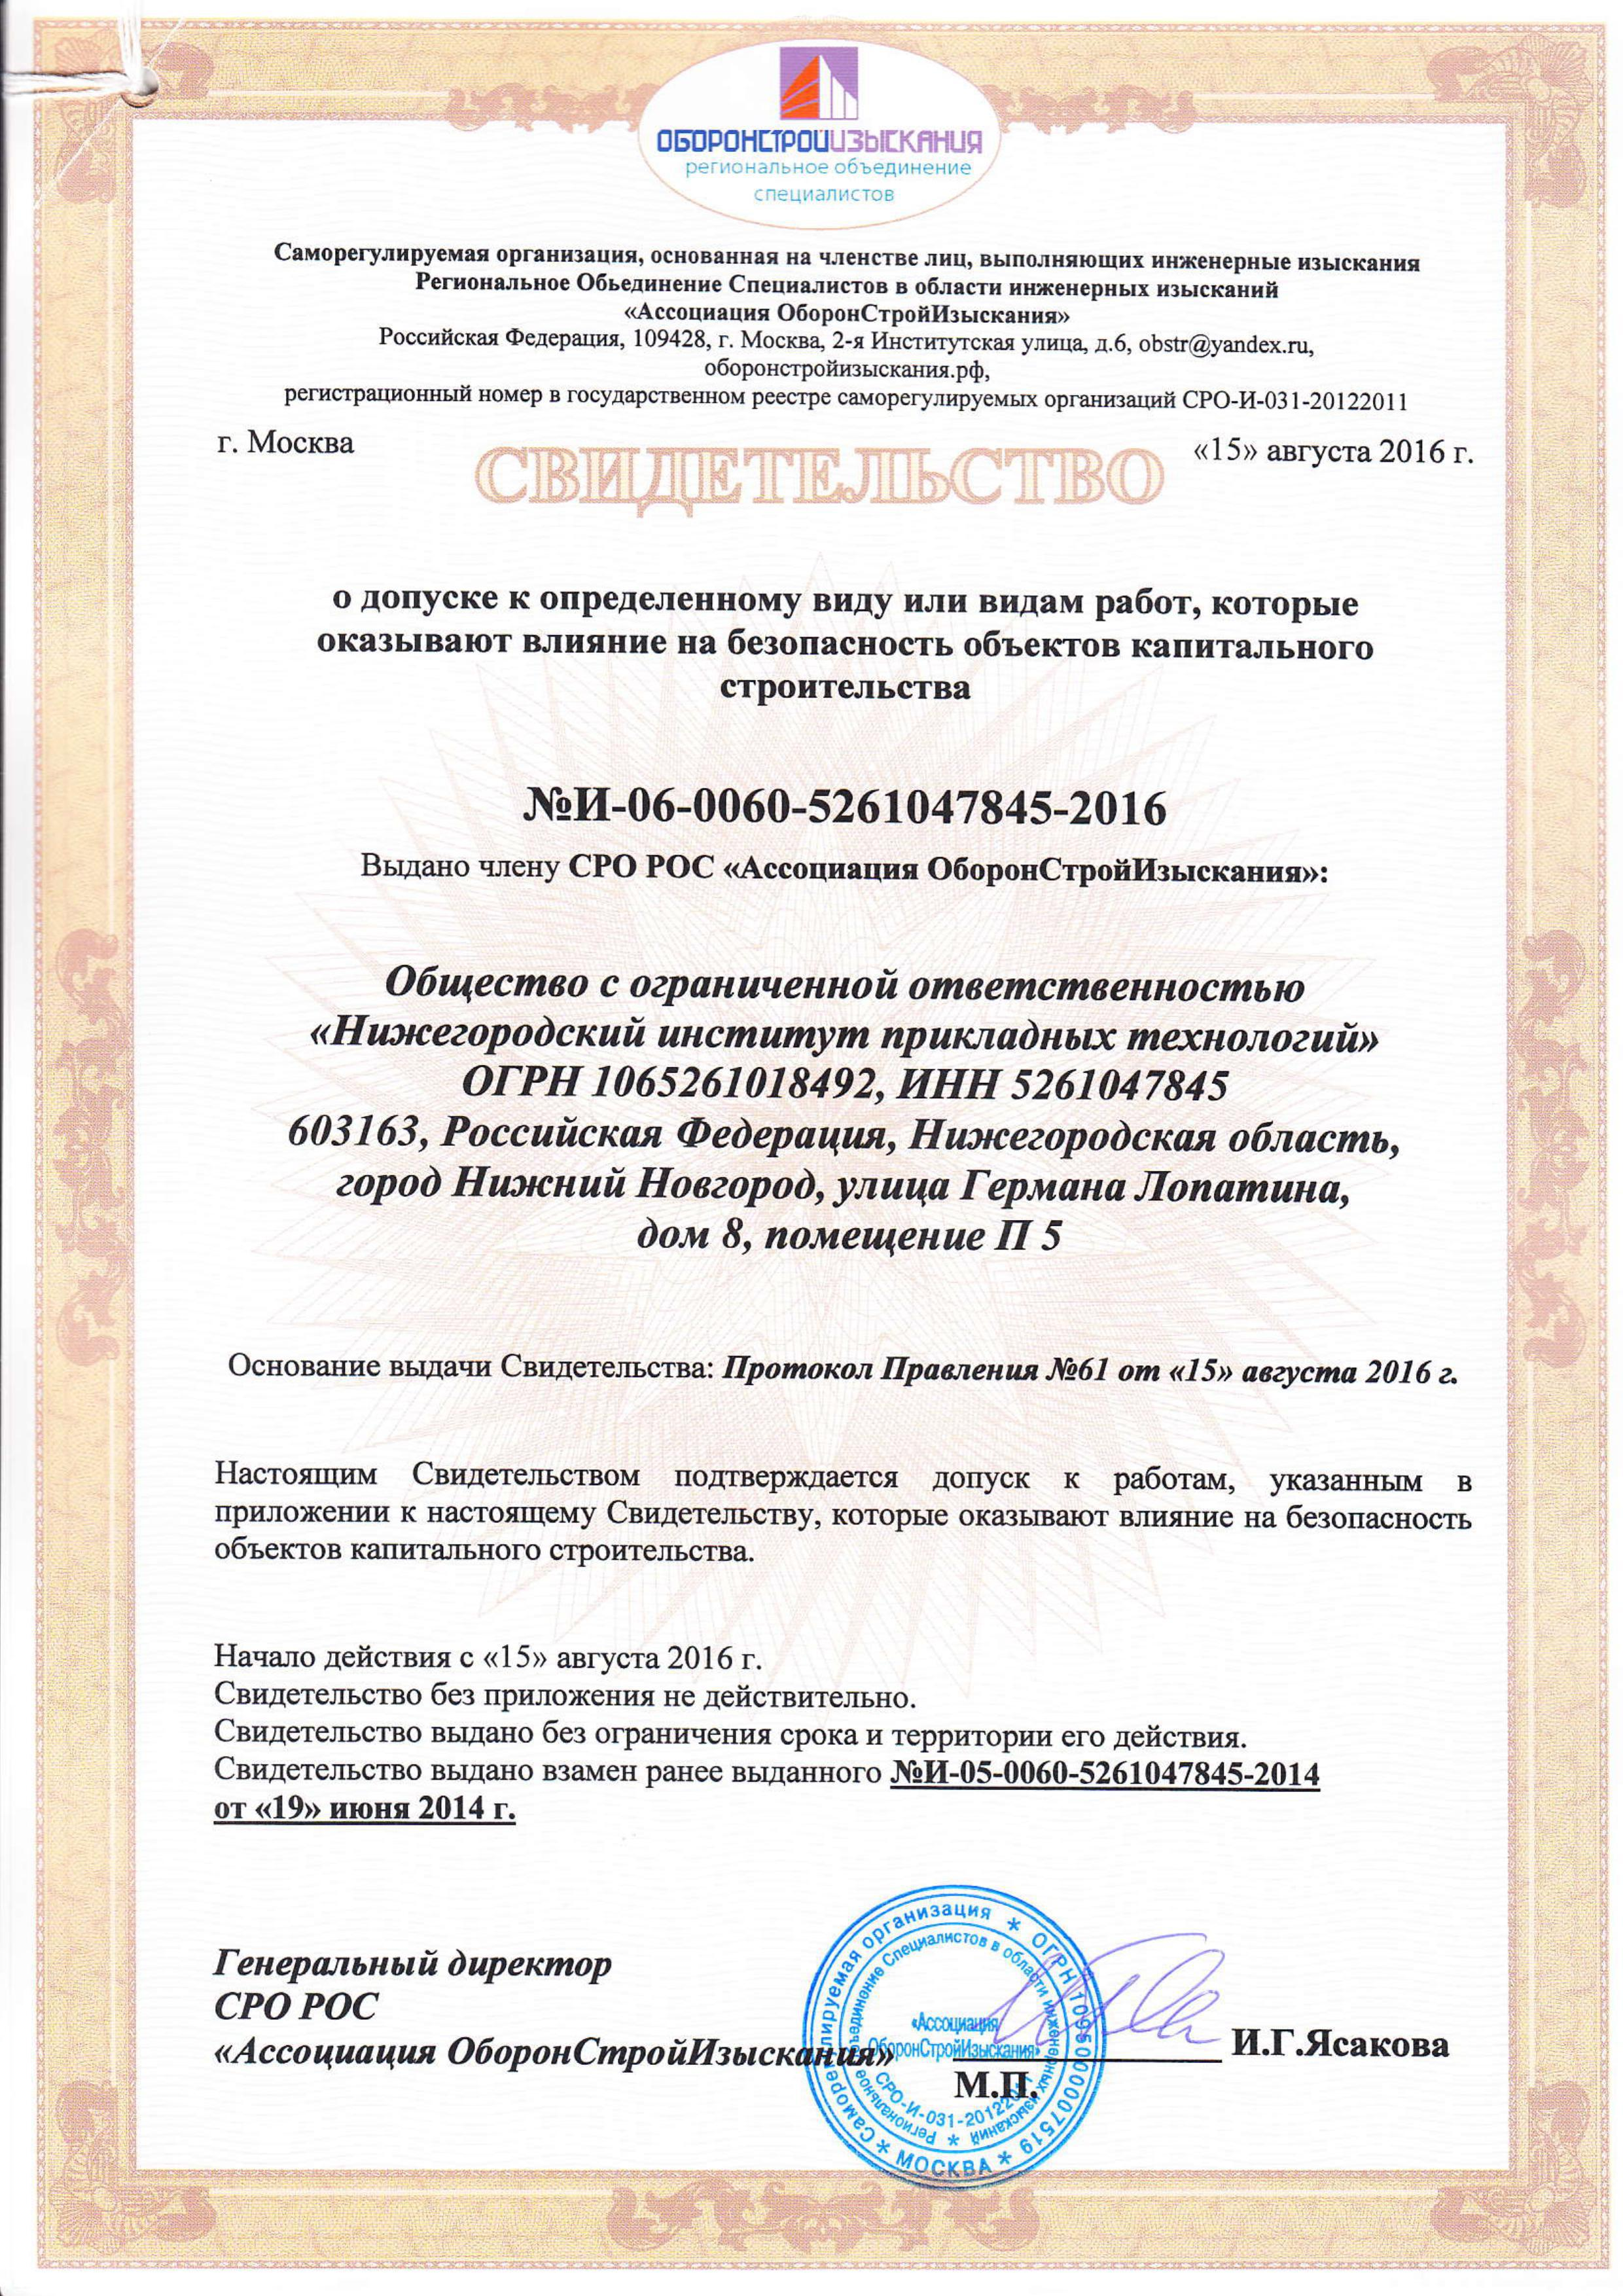 The company received Certificate И-06-0060-5261047845-2016